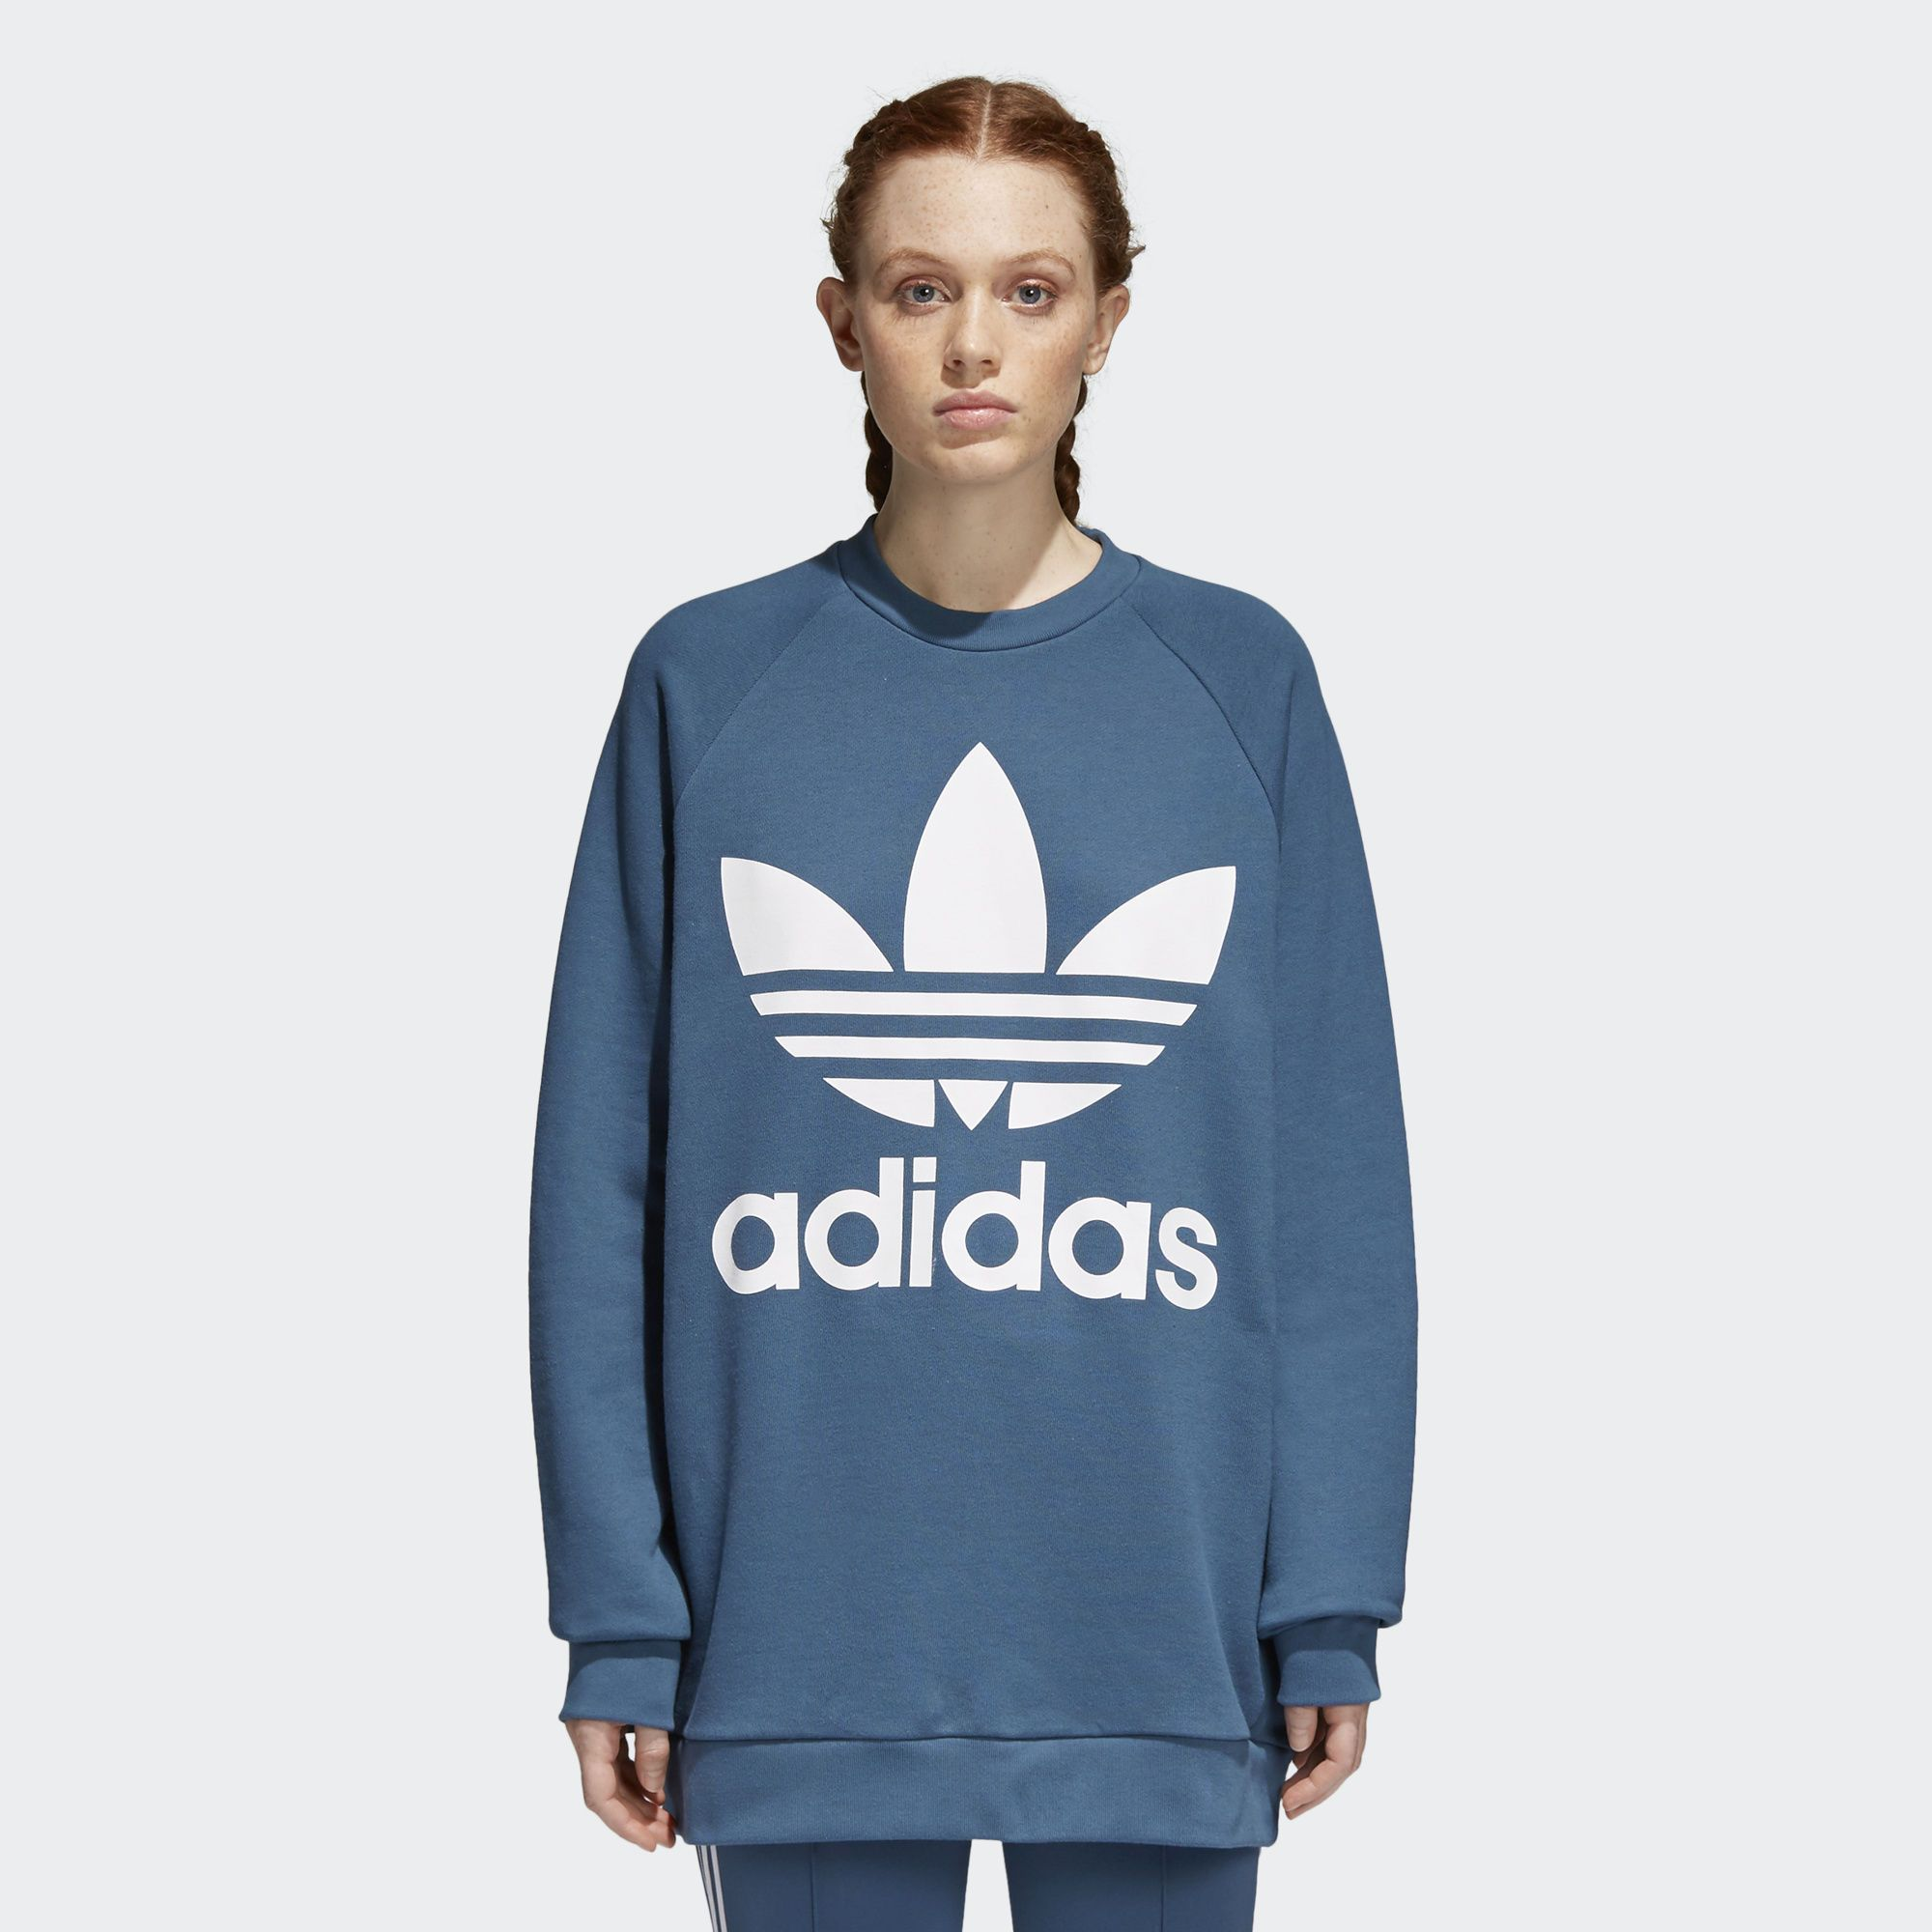 Shop The Trefoil Oversize Sweatshirt Grey At Adidas Com Us See All The Styles And Colors Of Trefoil Oversize S Sweatshirts Hoodies Womens Sweatshirts Hoodie [ 2000 x 2000 Pixel ]